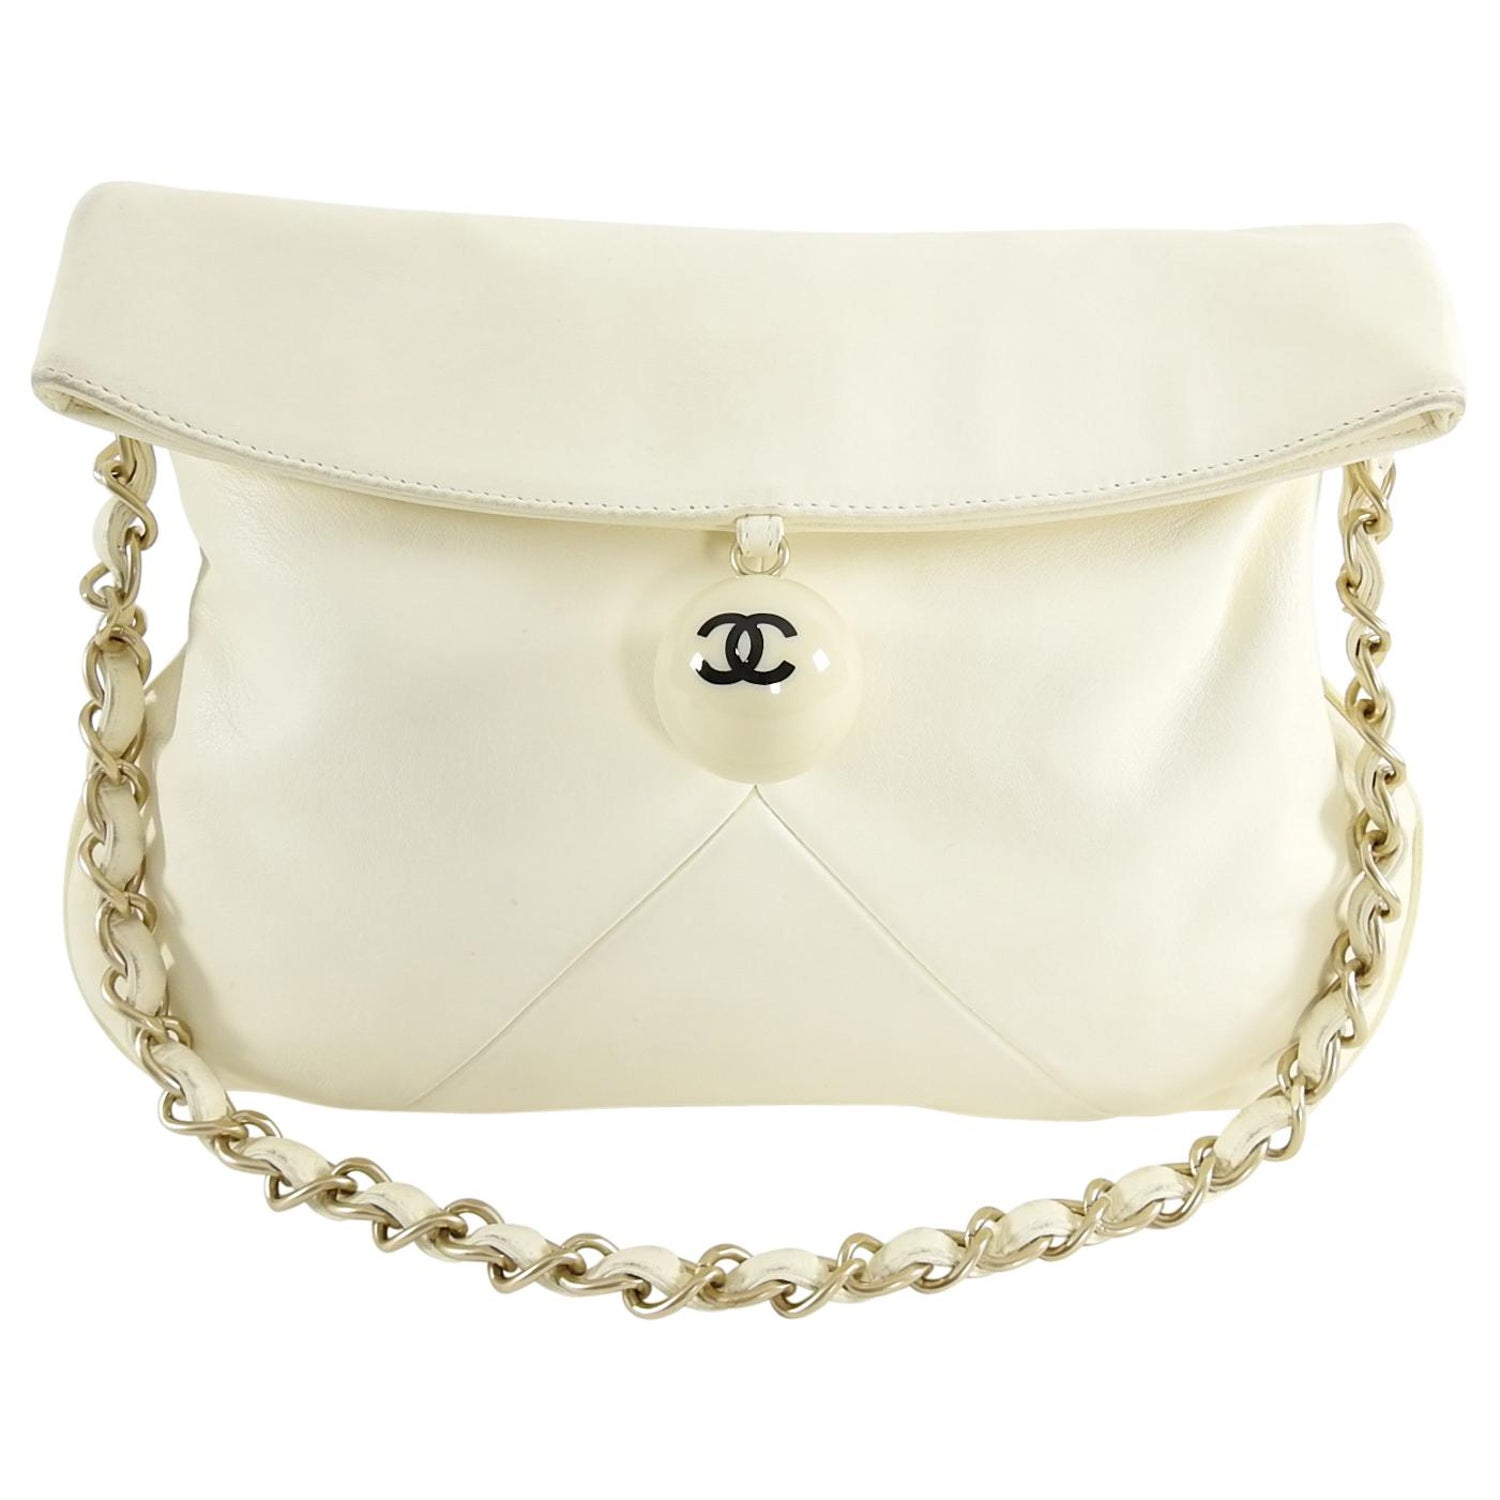 cb5fd99e45d9cc Chanel Ivory Lambskin Chain Strap Shoulder Bag with CC Resin Ball at 1stdibs